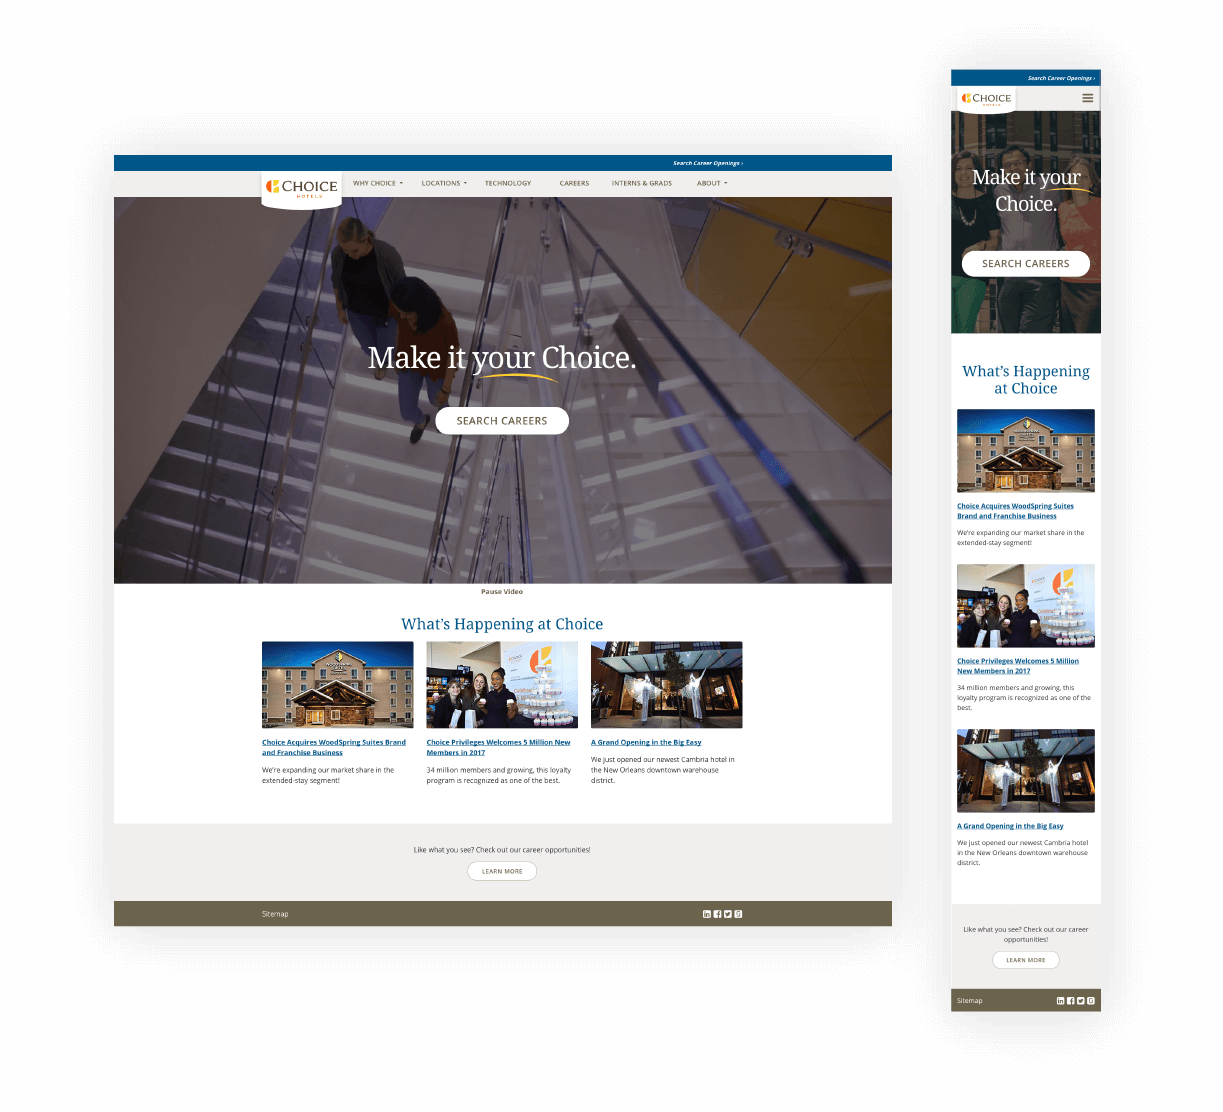 Mockup layout for website homepage.